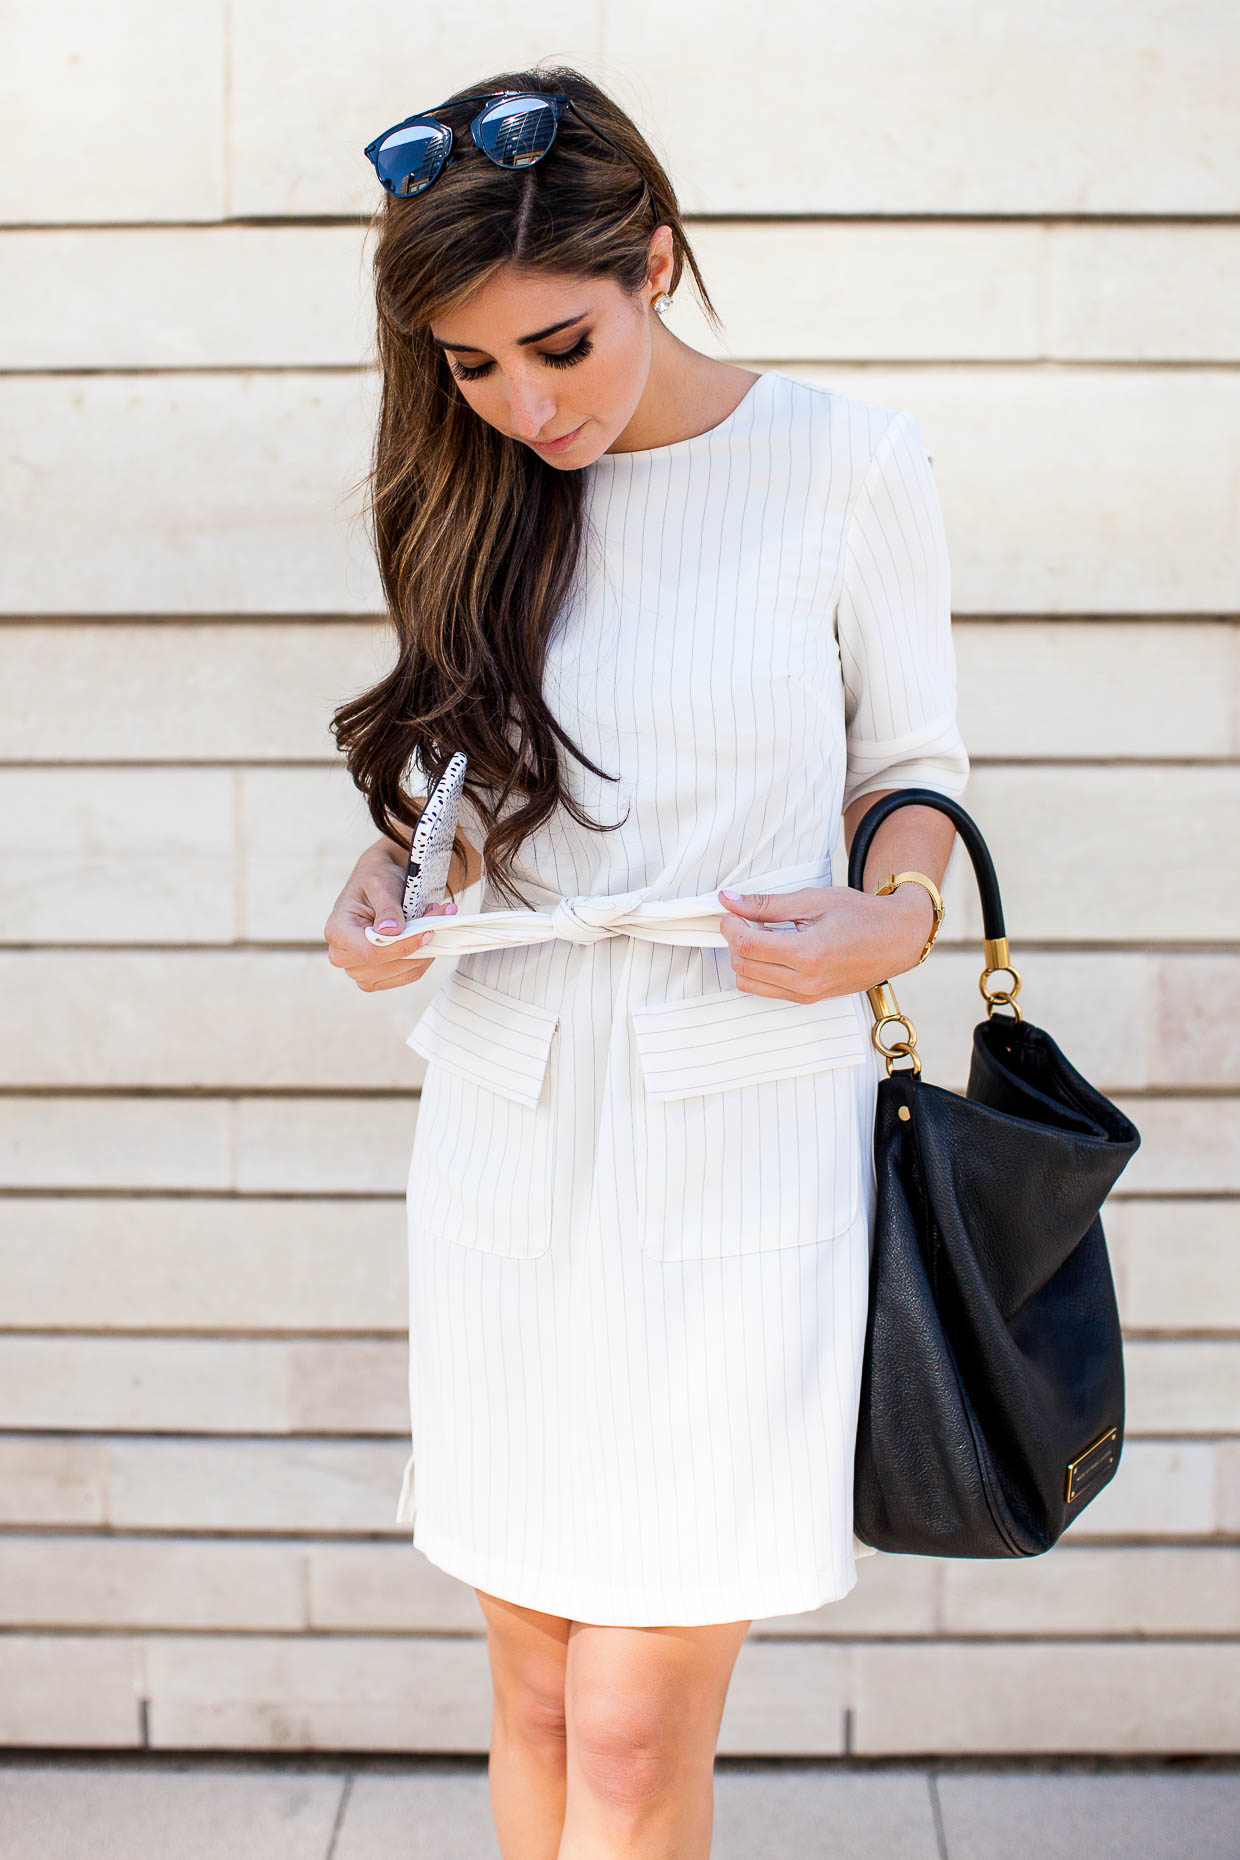 The Darling Detail in a Topshop business casual dress